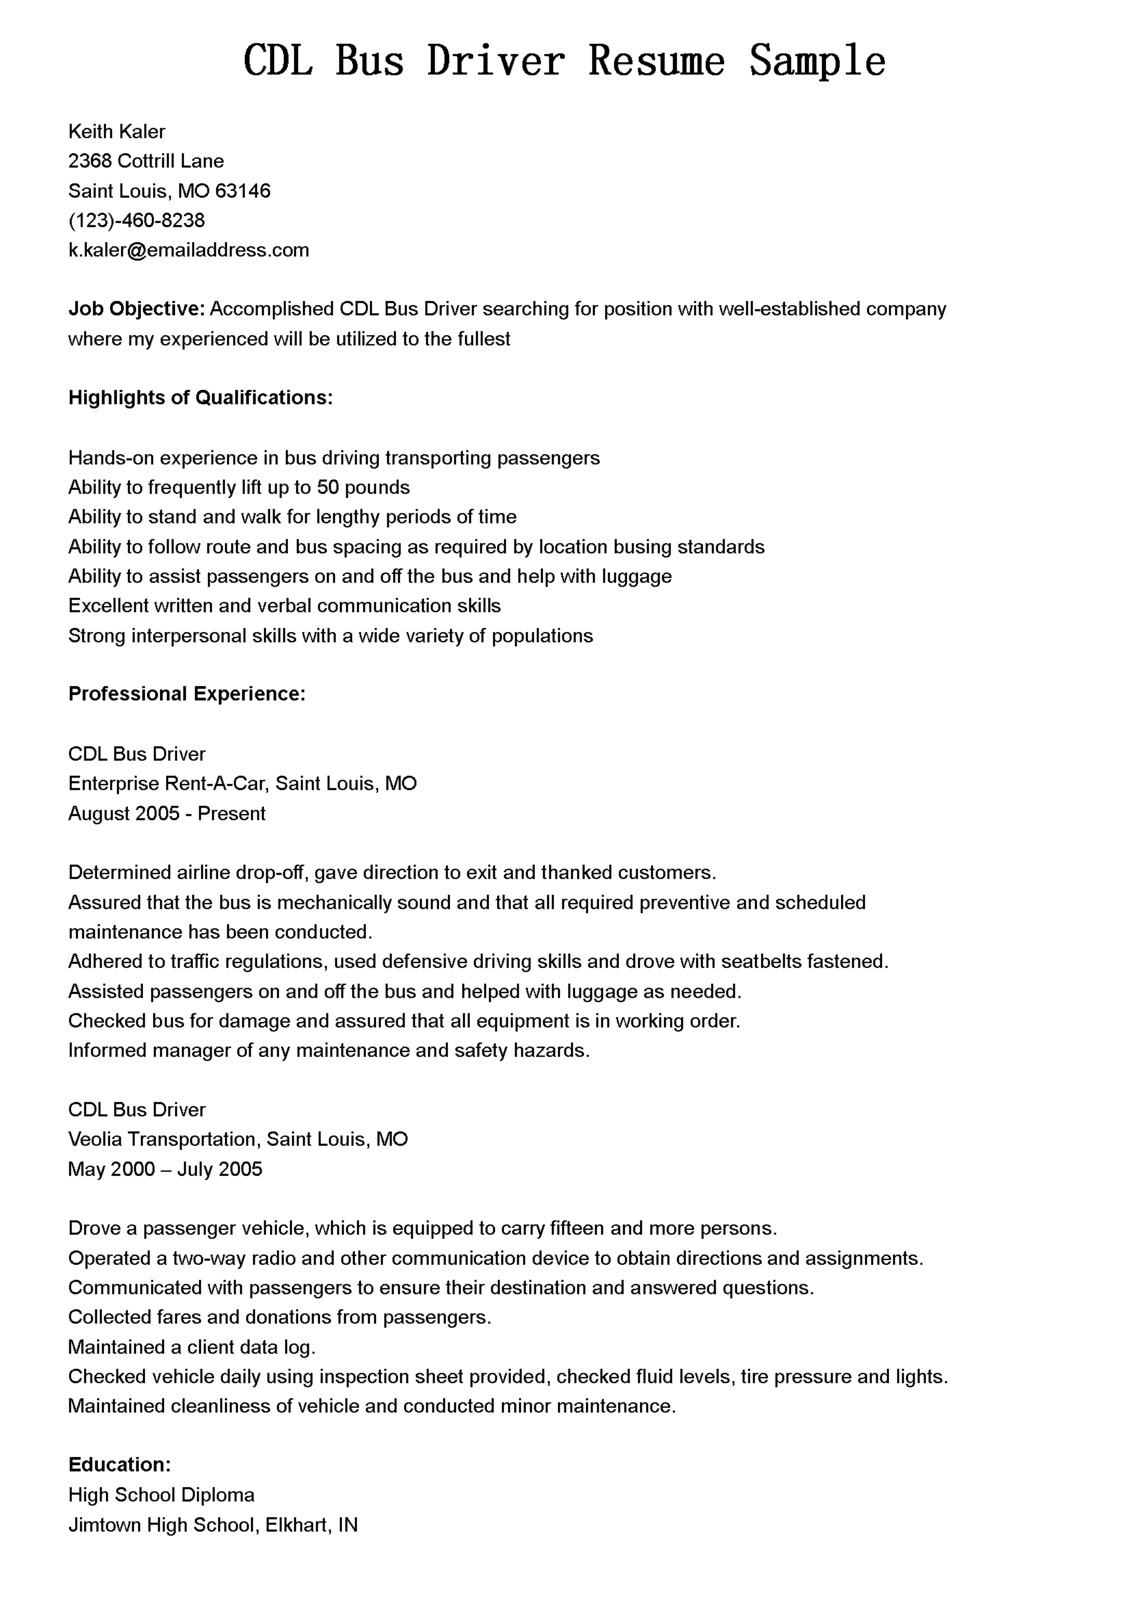 Driver Resumes: CDL Bus Driver Resume Sample